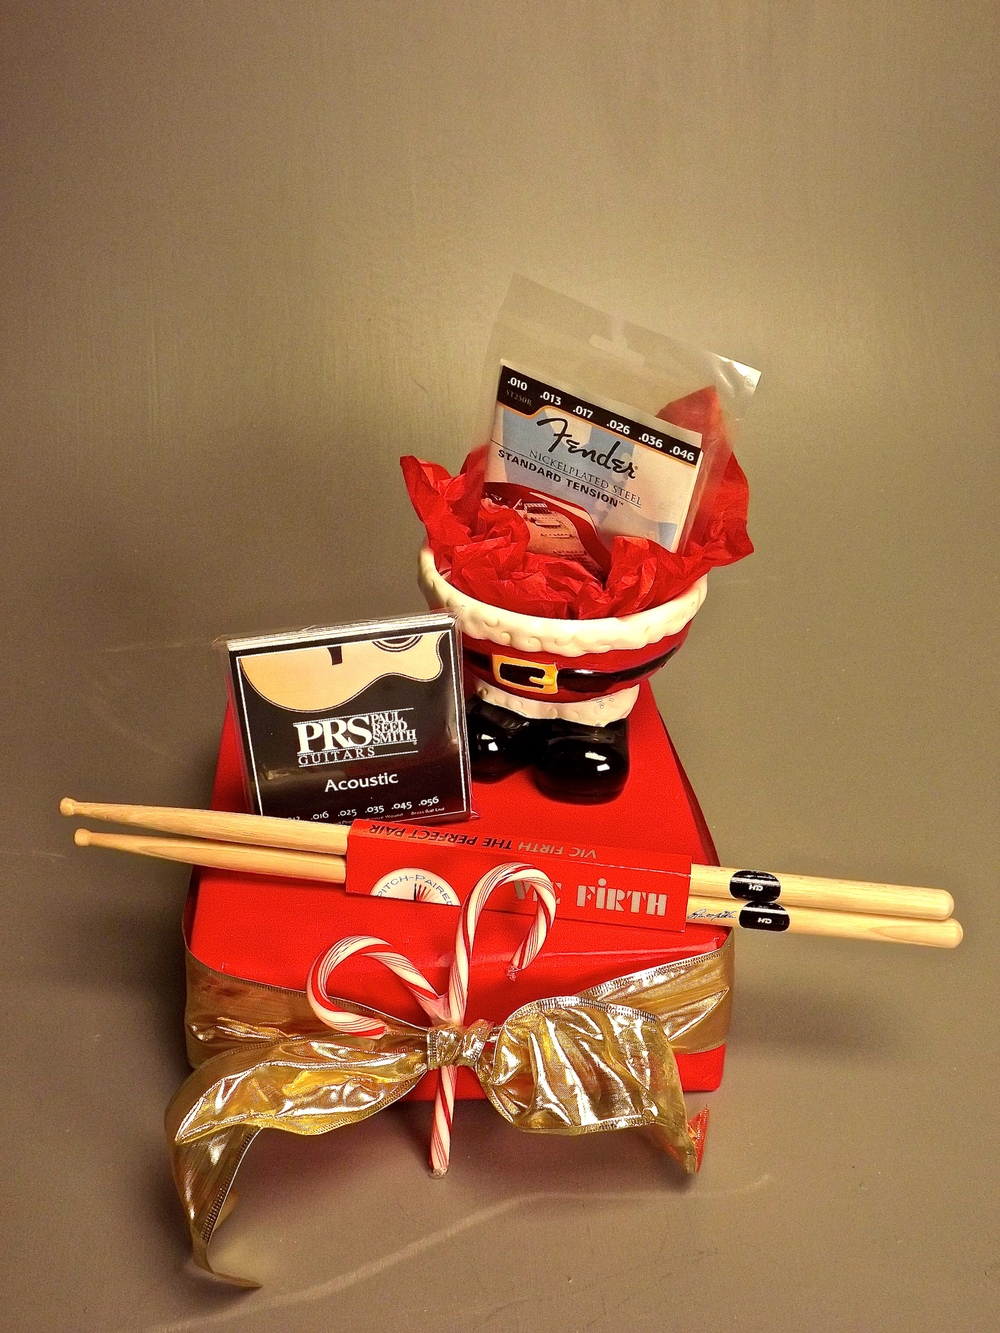 One set of drumsticks, One package acoustic guitar string, One package electric guitar strings.